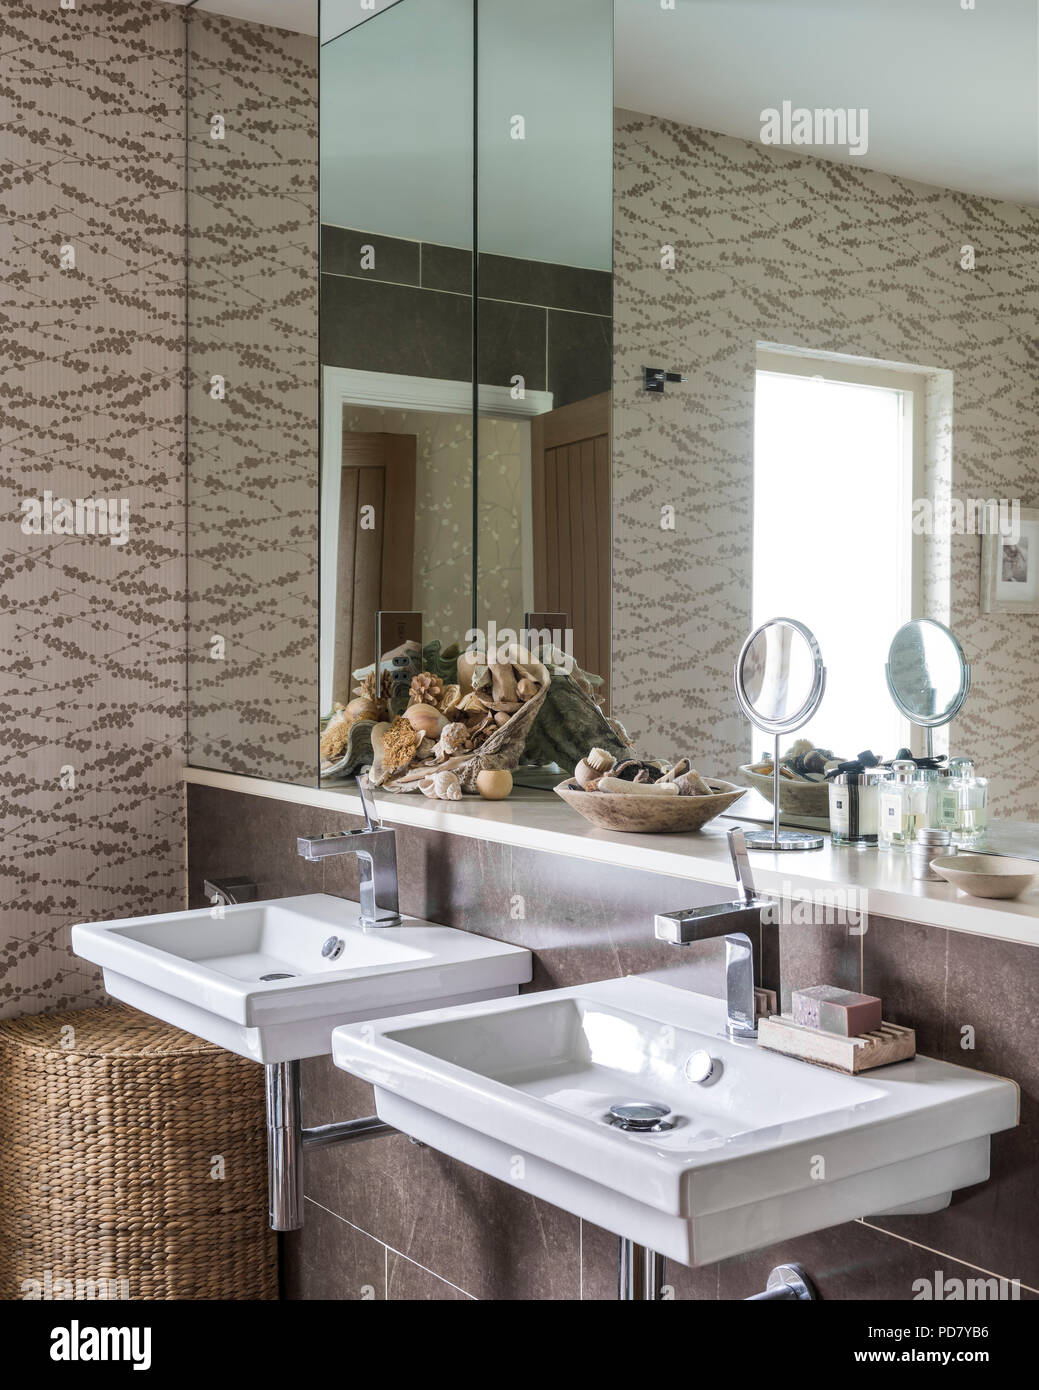 Sticks wallpaper from Knowles and Christou in bathroom with pair of duravit basins and taps by Citterio from Hans Grohe - Stock Image